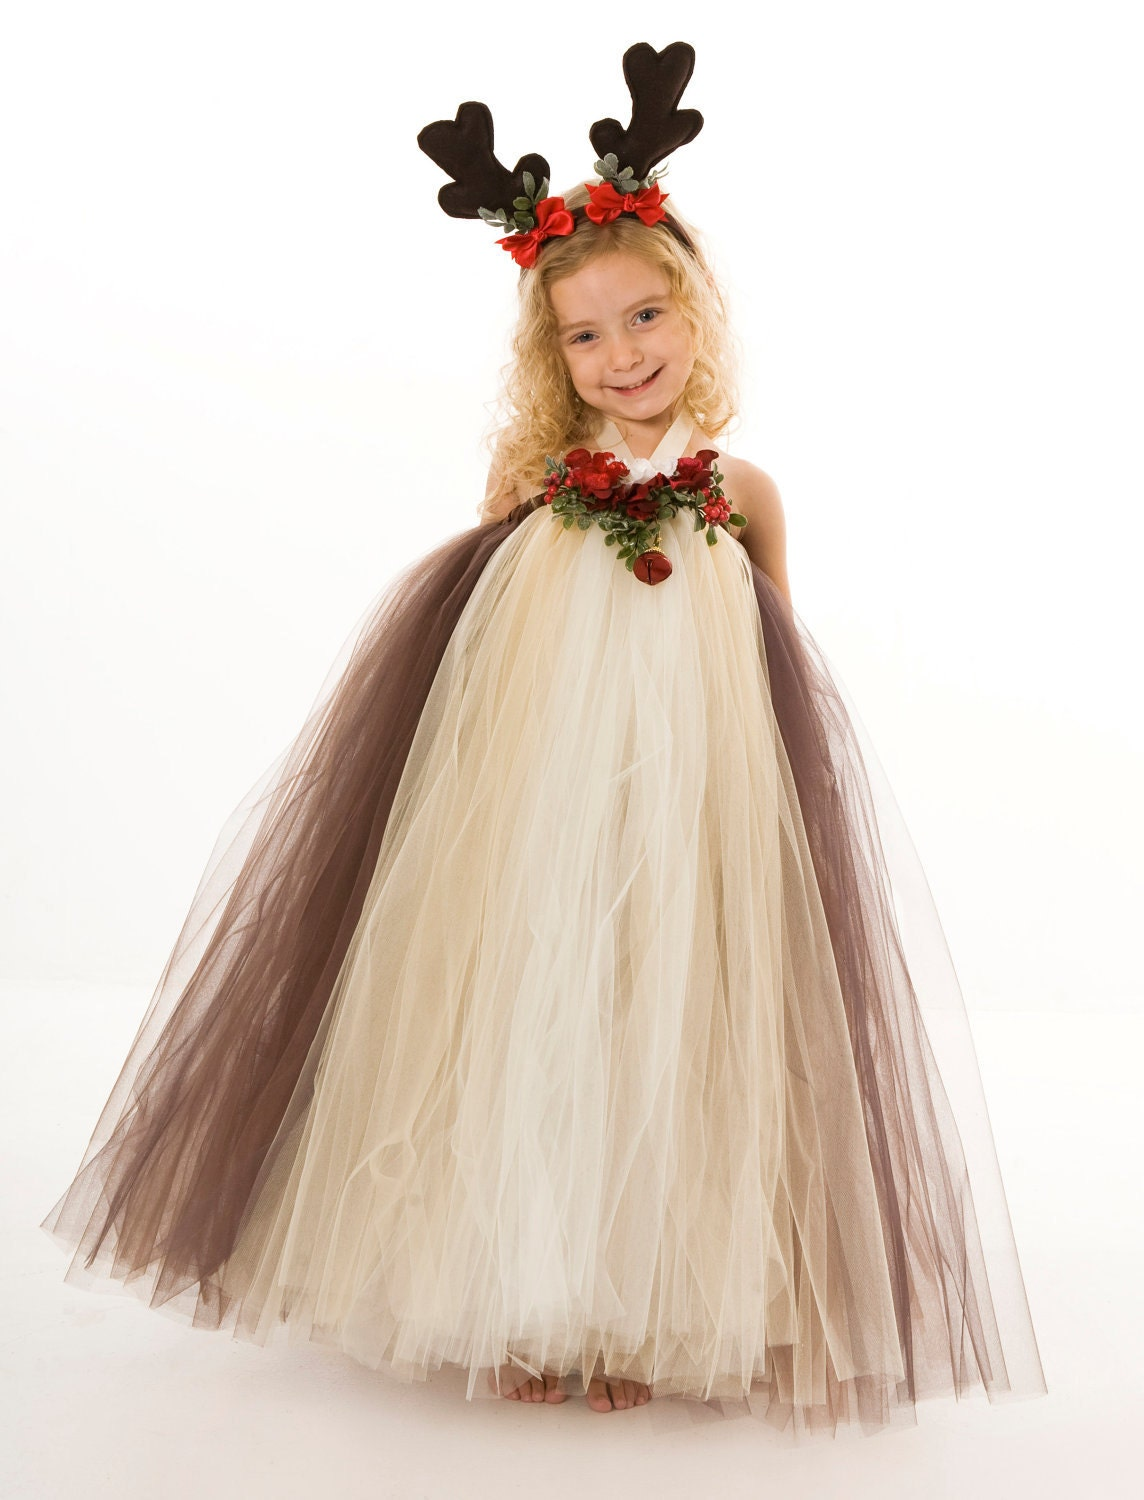 Tis The Season! Celebrate this year's Christmas in style with the cutest Christmas dresses for the stylish little lady in your life! Add a little sparkle to any princess's style with this plaid tutu dress.